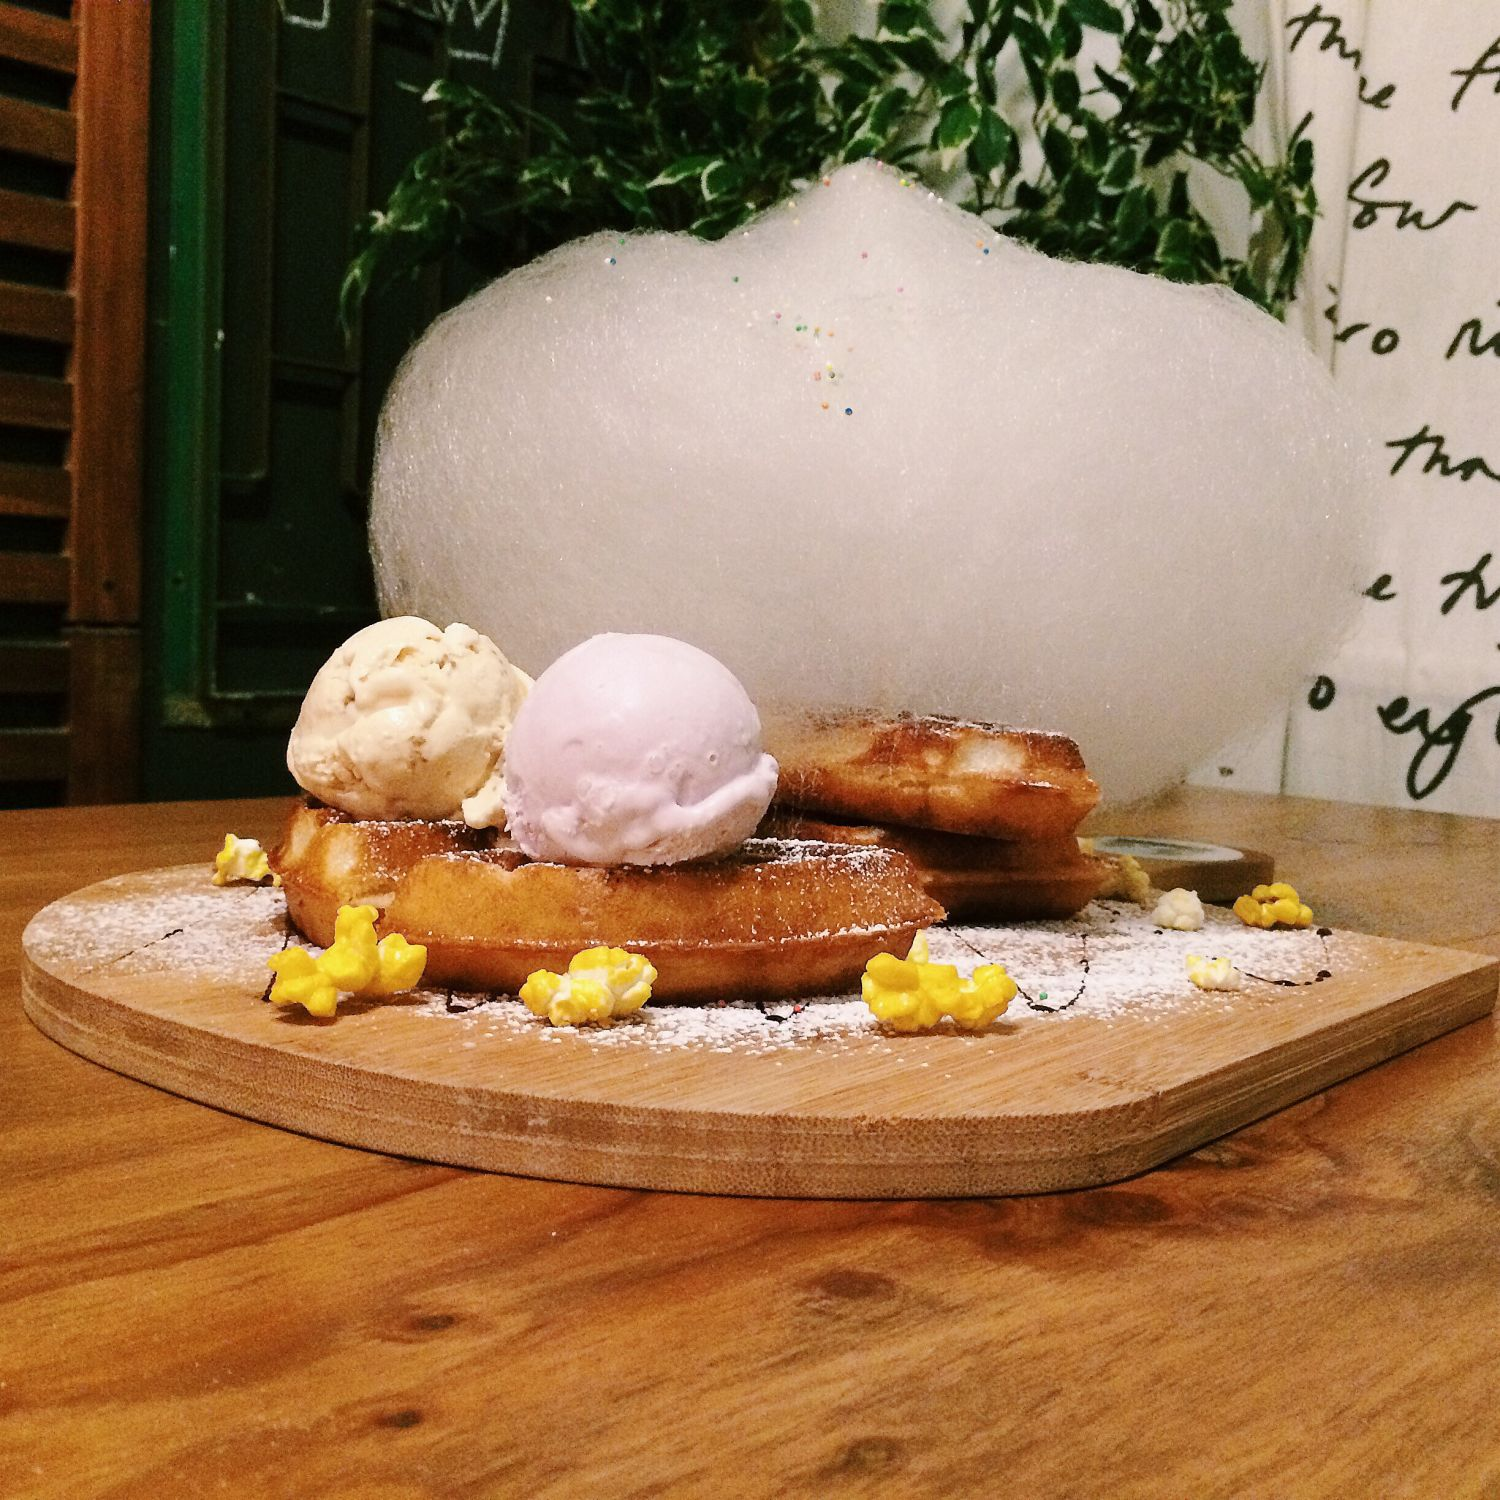 Cotton-Pop Waffle with Ice Cream - Bunny and Pony